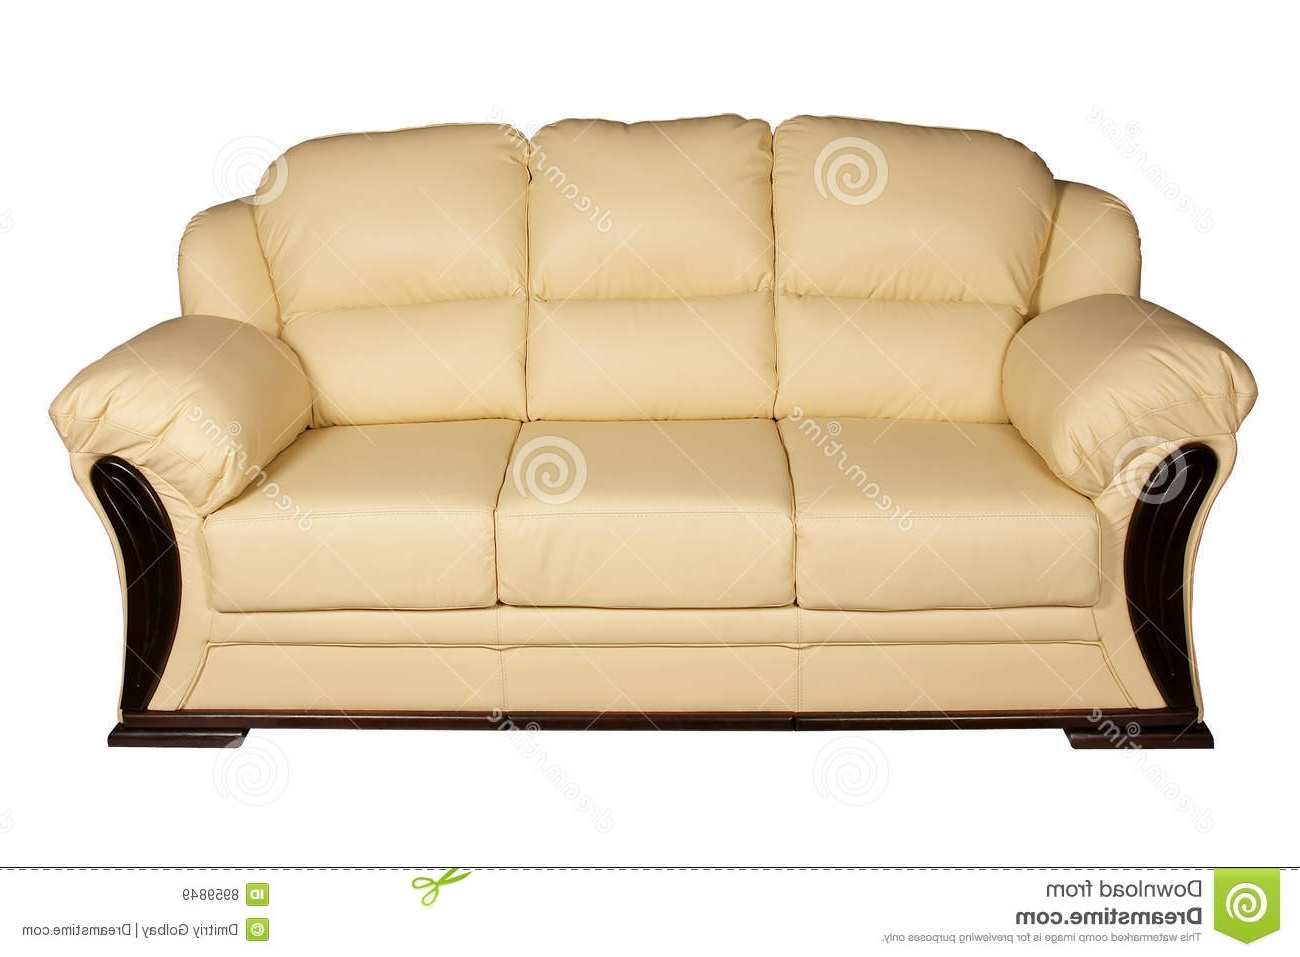 Cream Colored Sofas With Regard To Current Perfect Cream Colored Sofa 27 For Office Sofa Ideas With Cream (View 9 of 20)